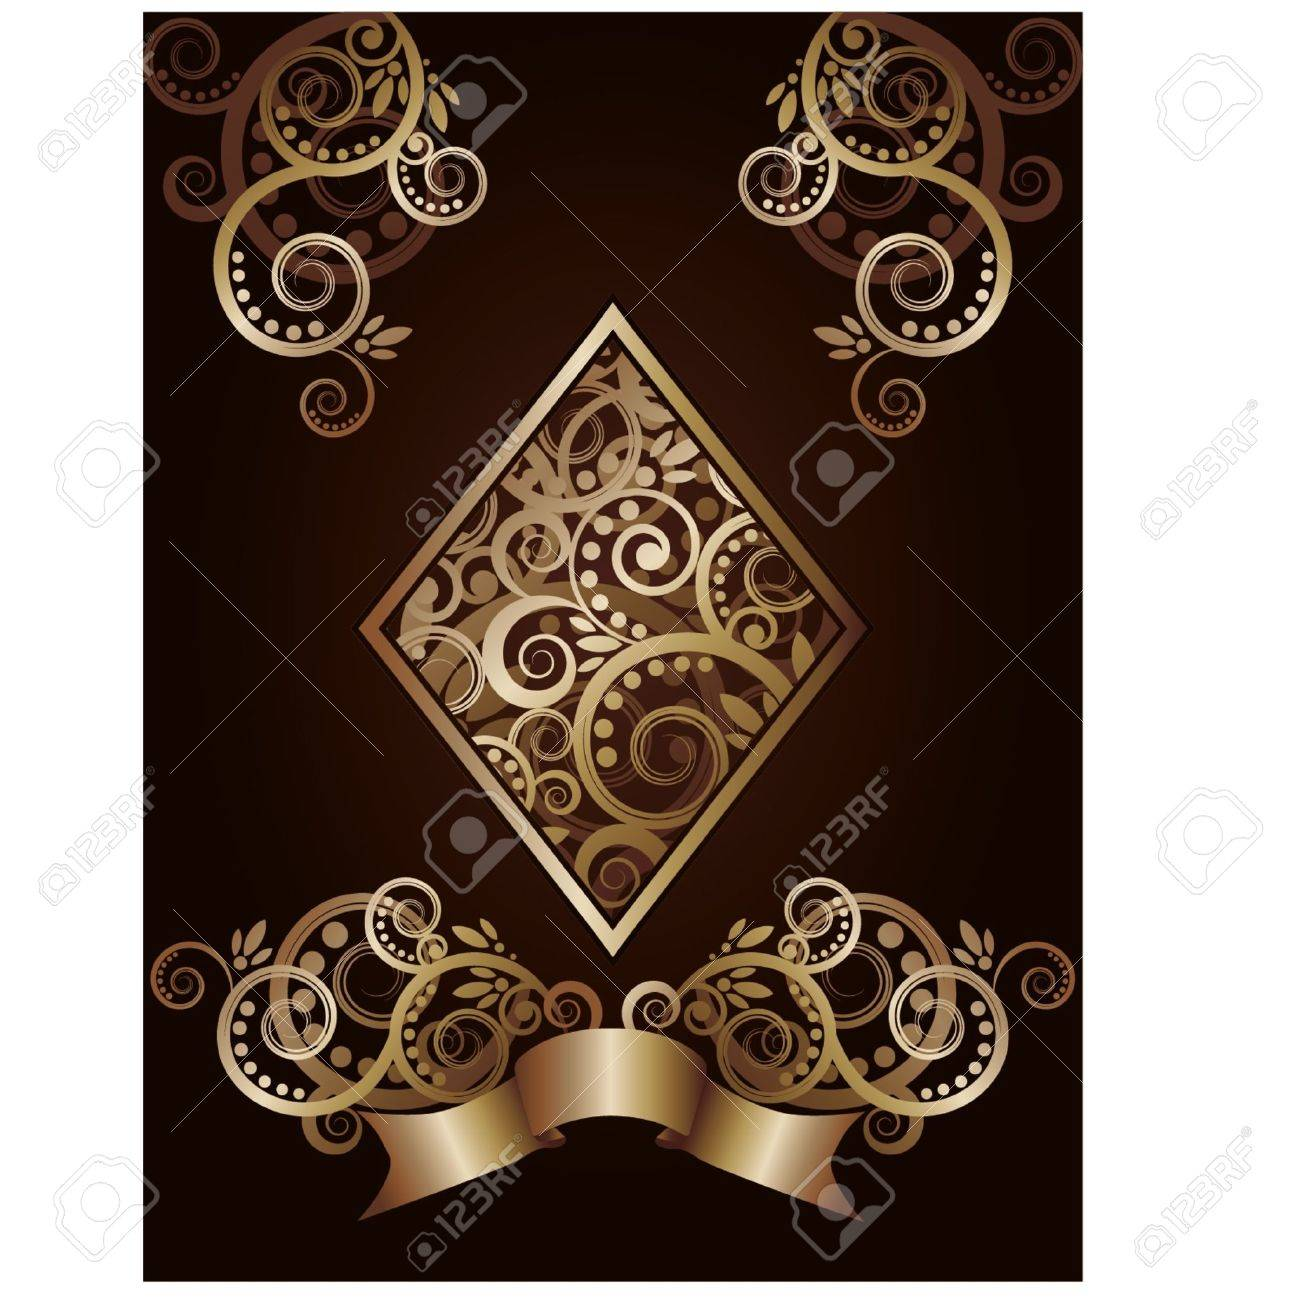 Diamond ace poker playing cards, illustration Stock Vector - 17714105